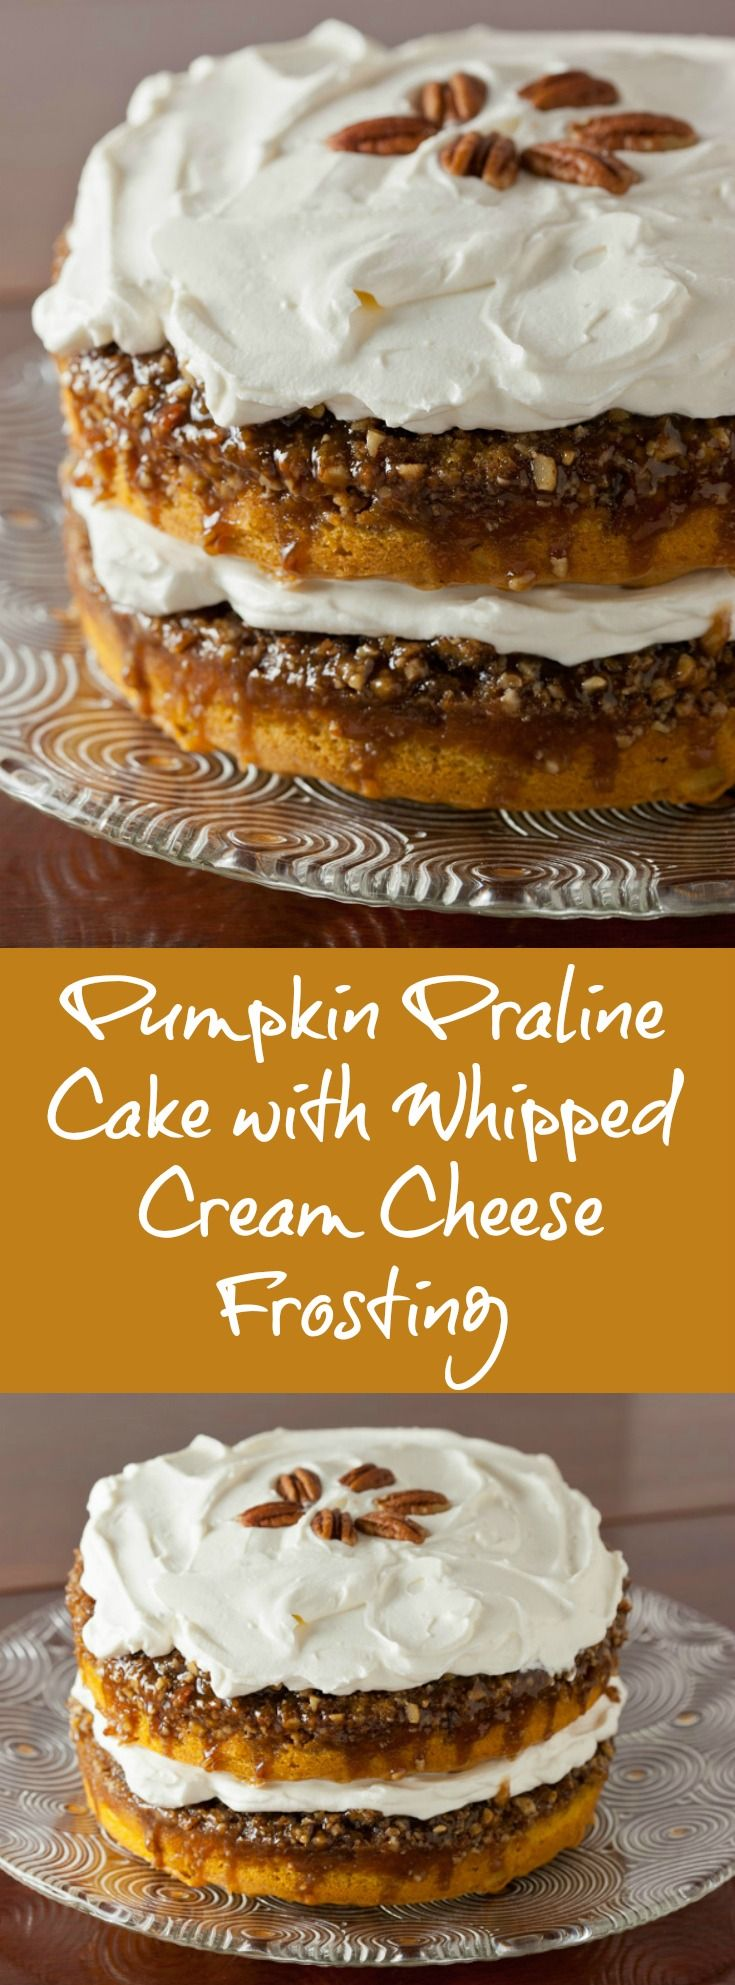 Pumpkin Praline Cake with Whipped Cream Cheese Frosting #creamfrosting